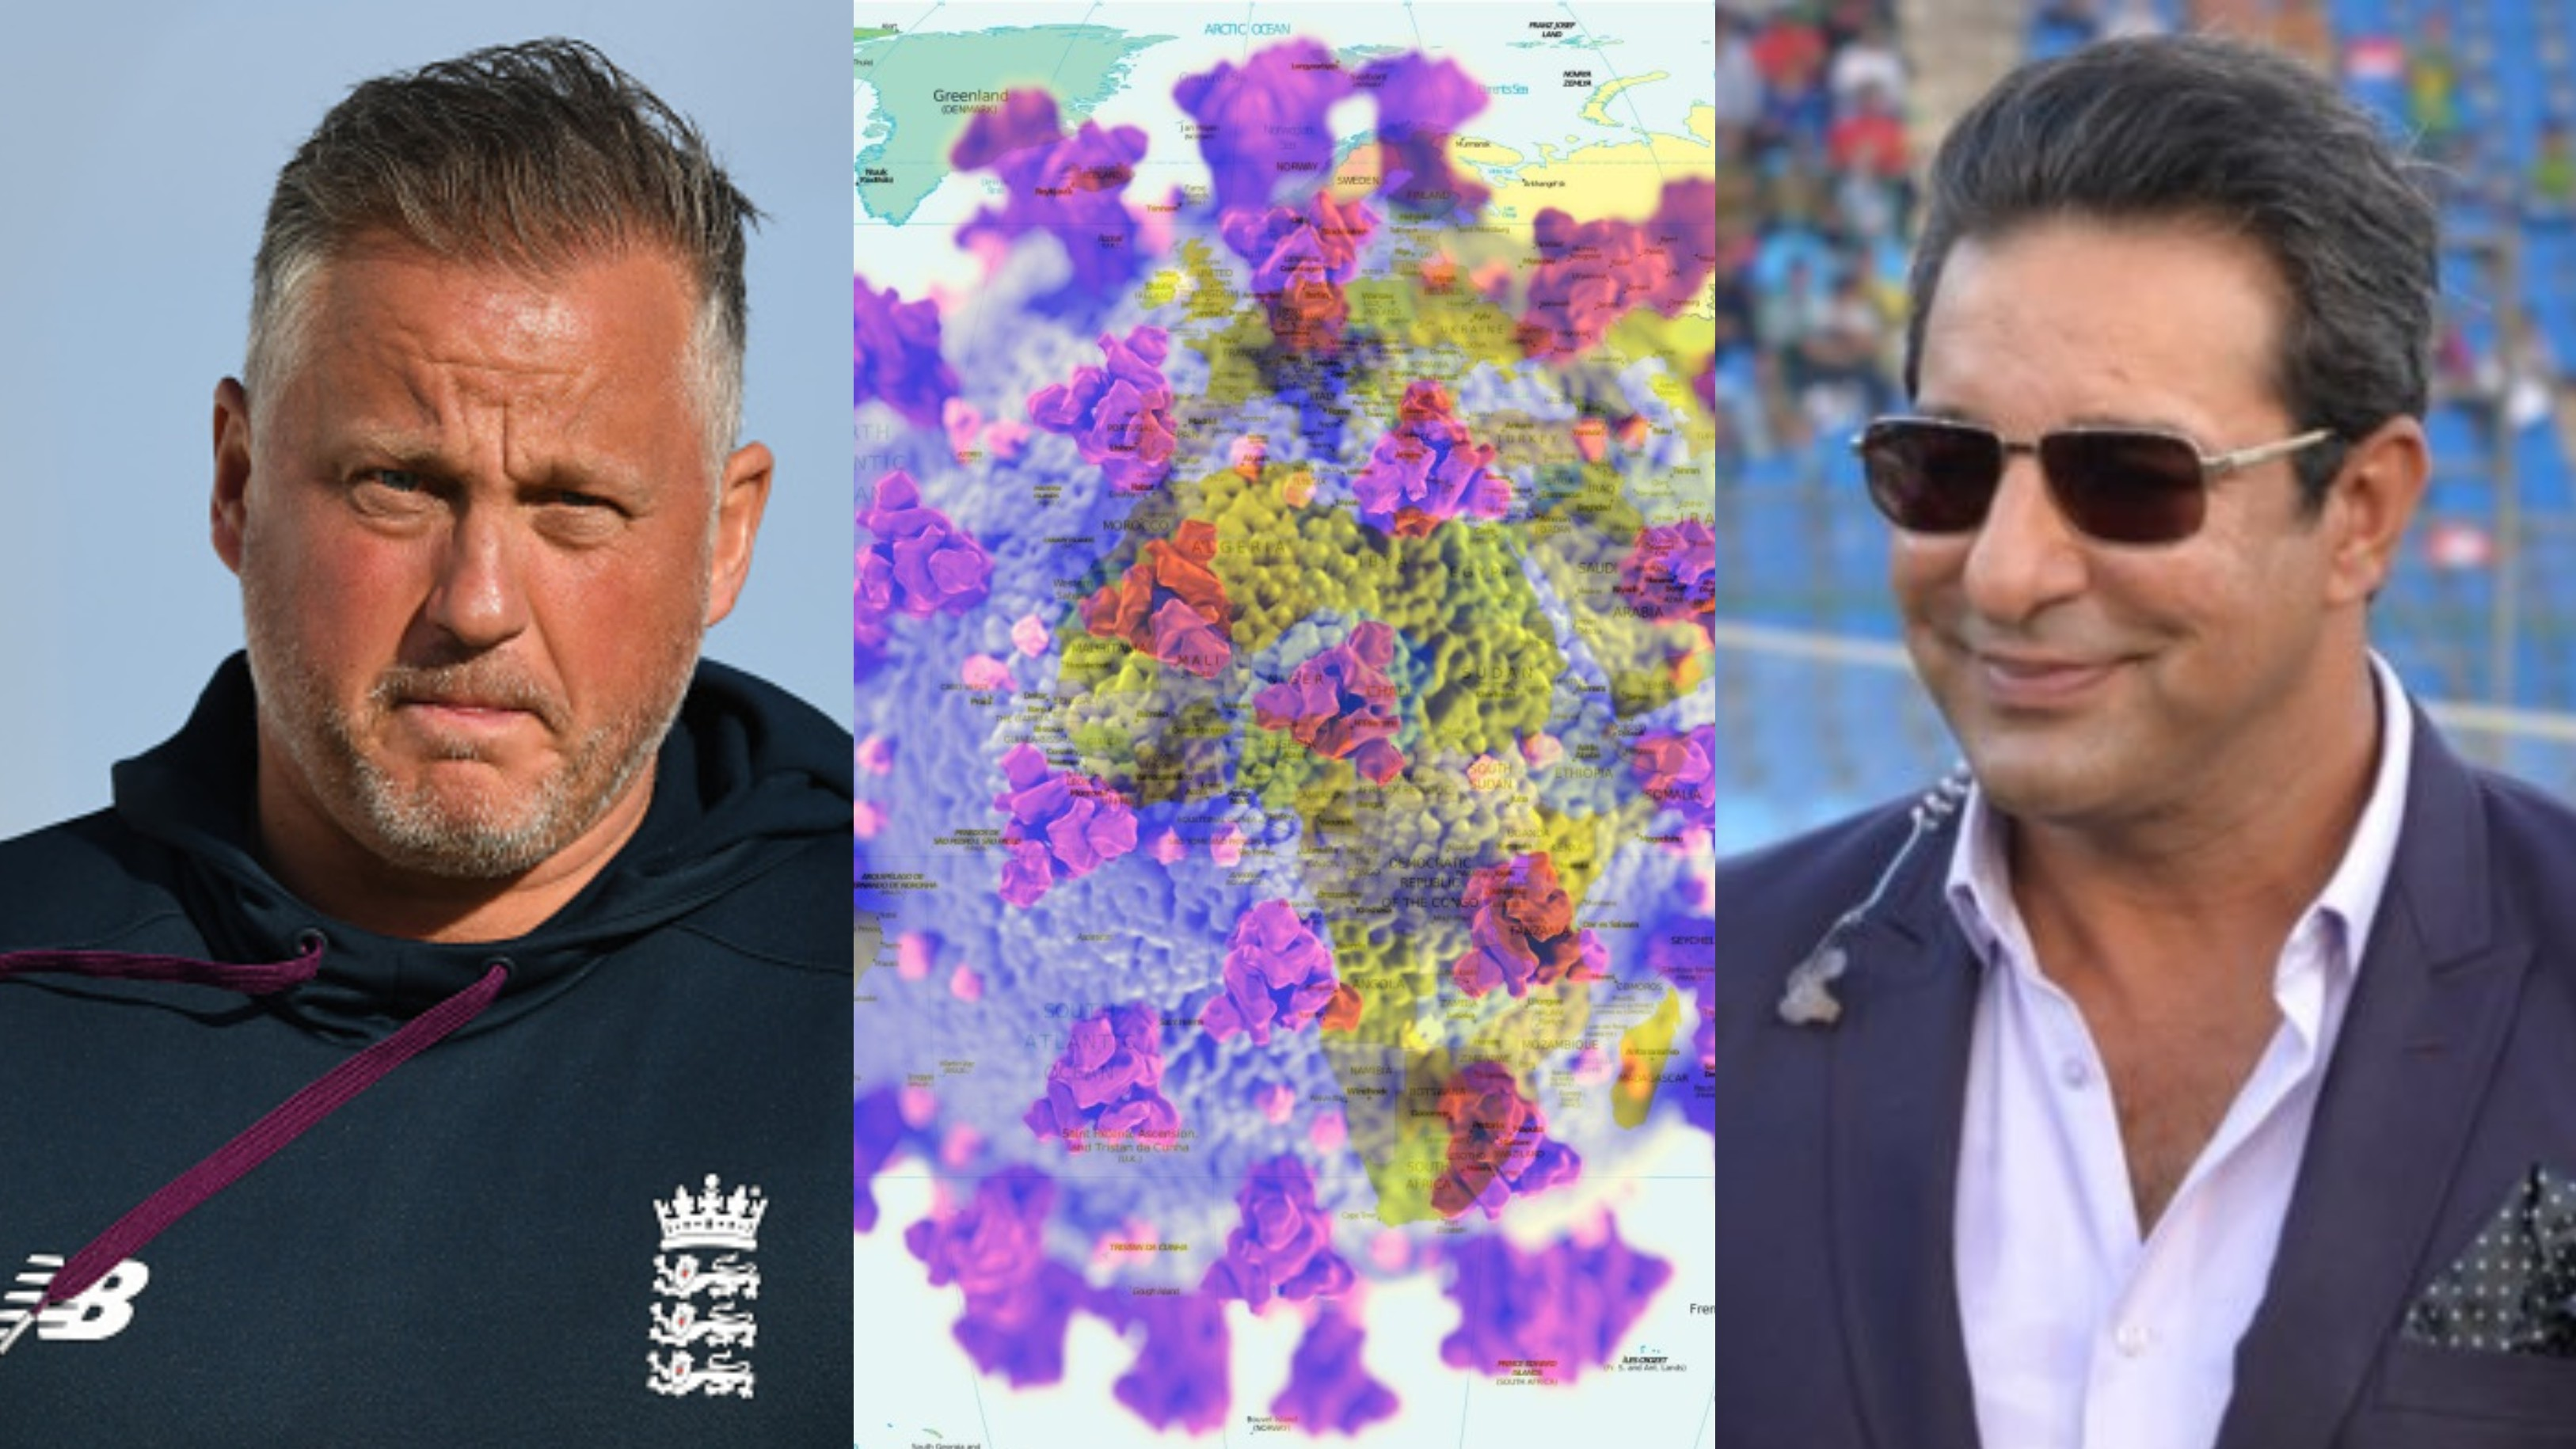 Wasim Akram and Darren Gough to auction memorabilia to raise funds for Coronavirus fight